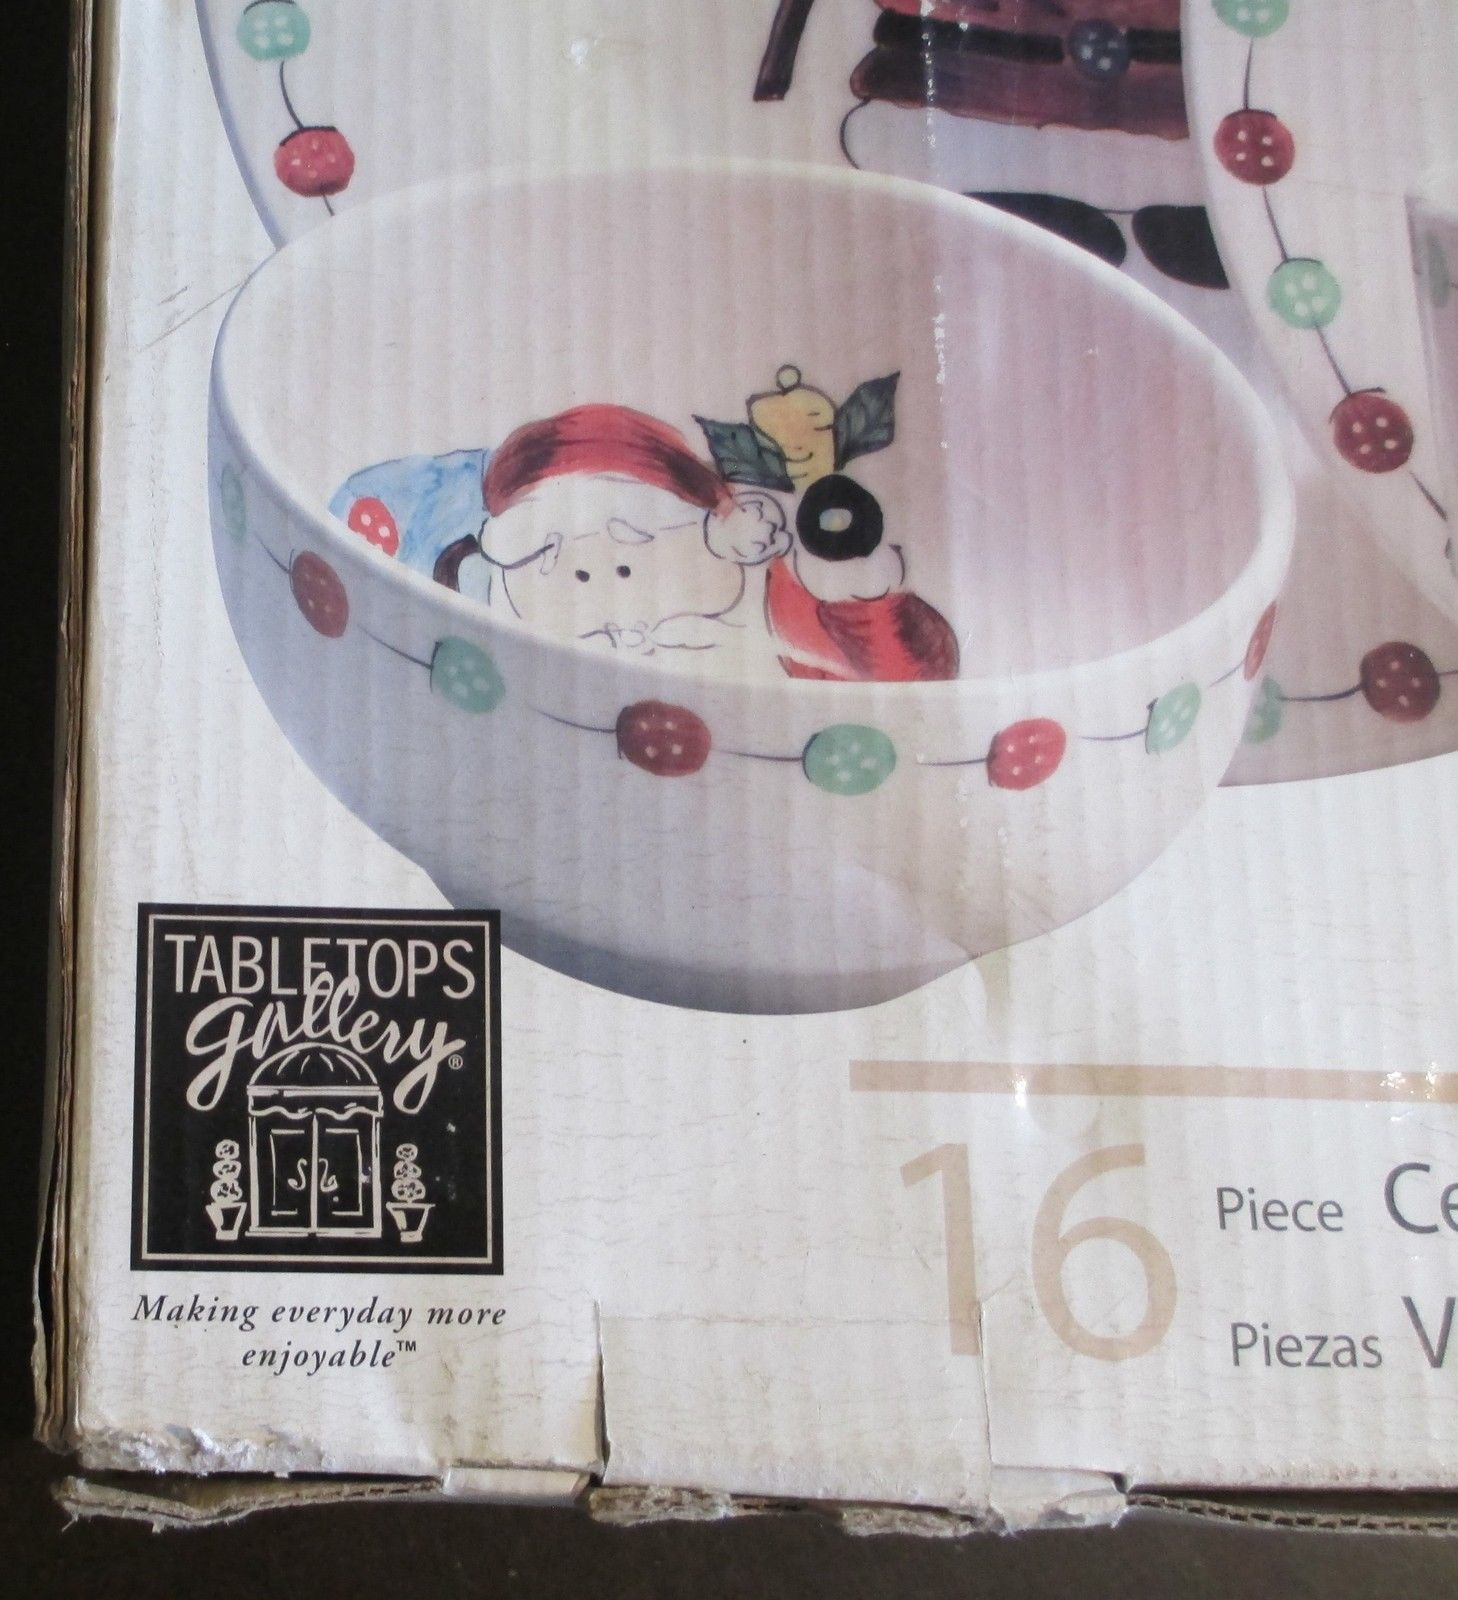 Tabletops Gallery Button Santa Boxed Set of 16 Plates, Bowls and Mugs image 2